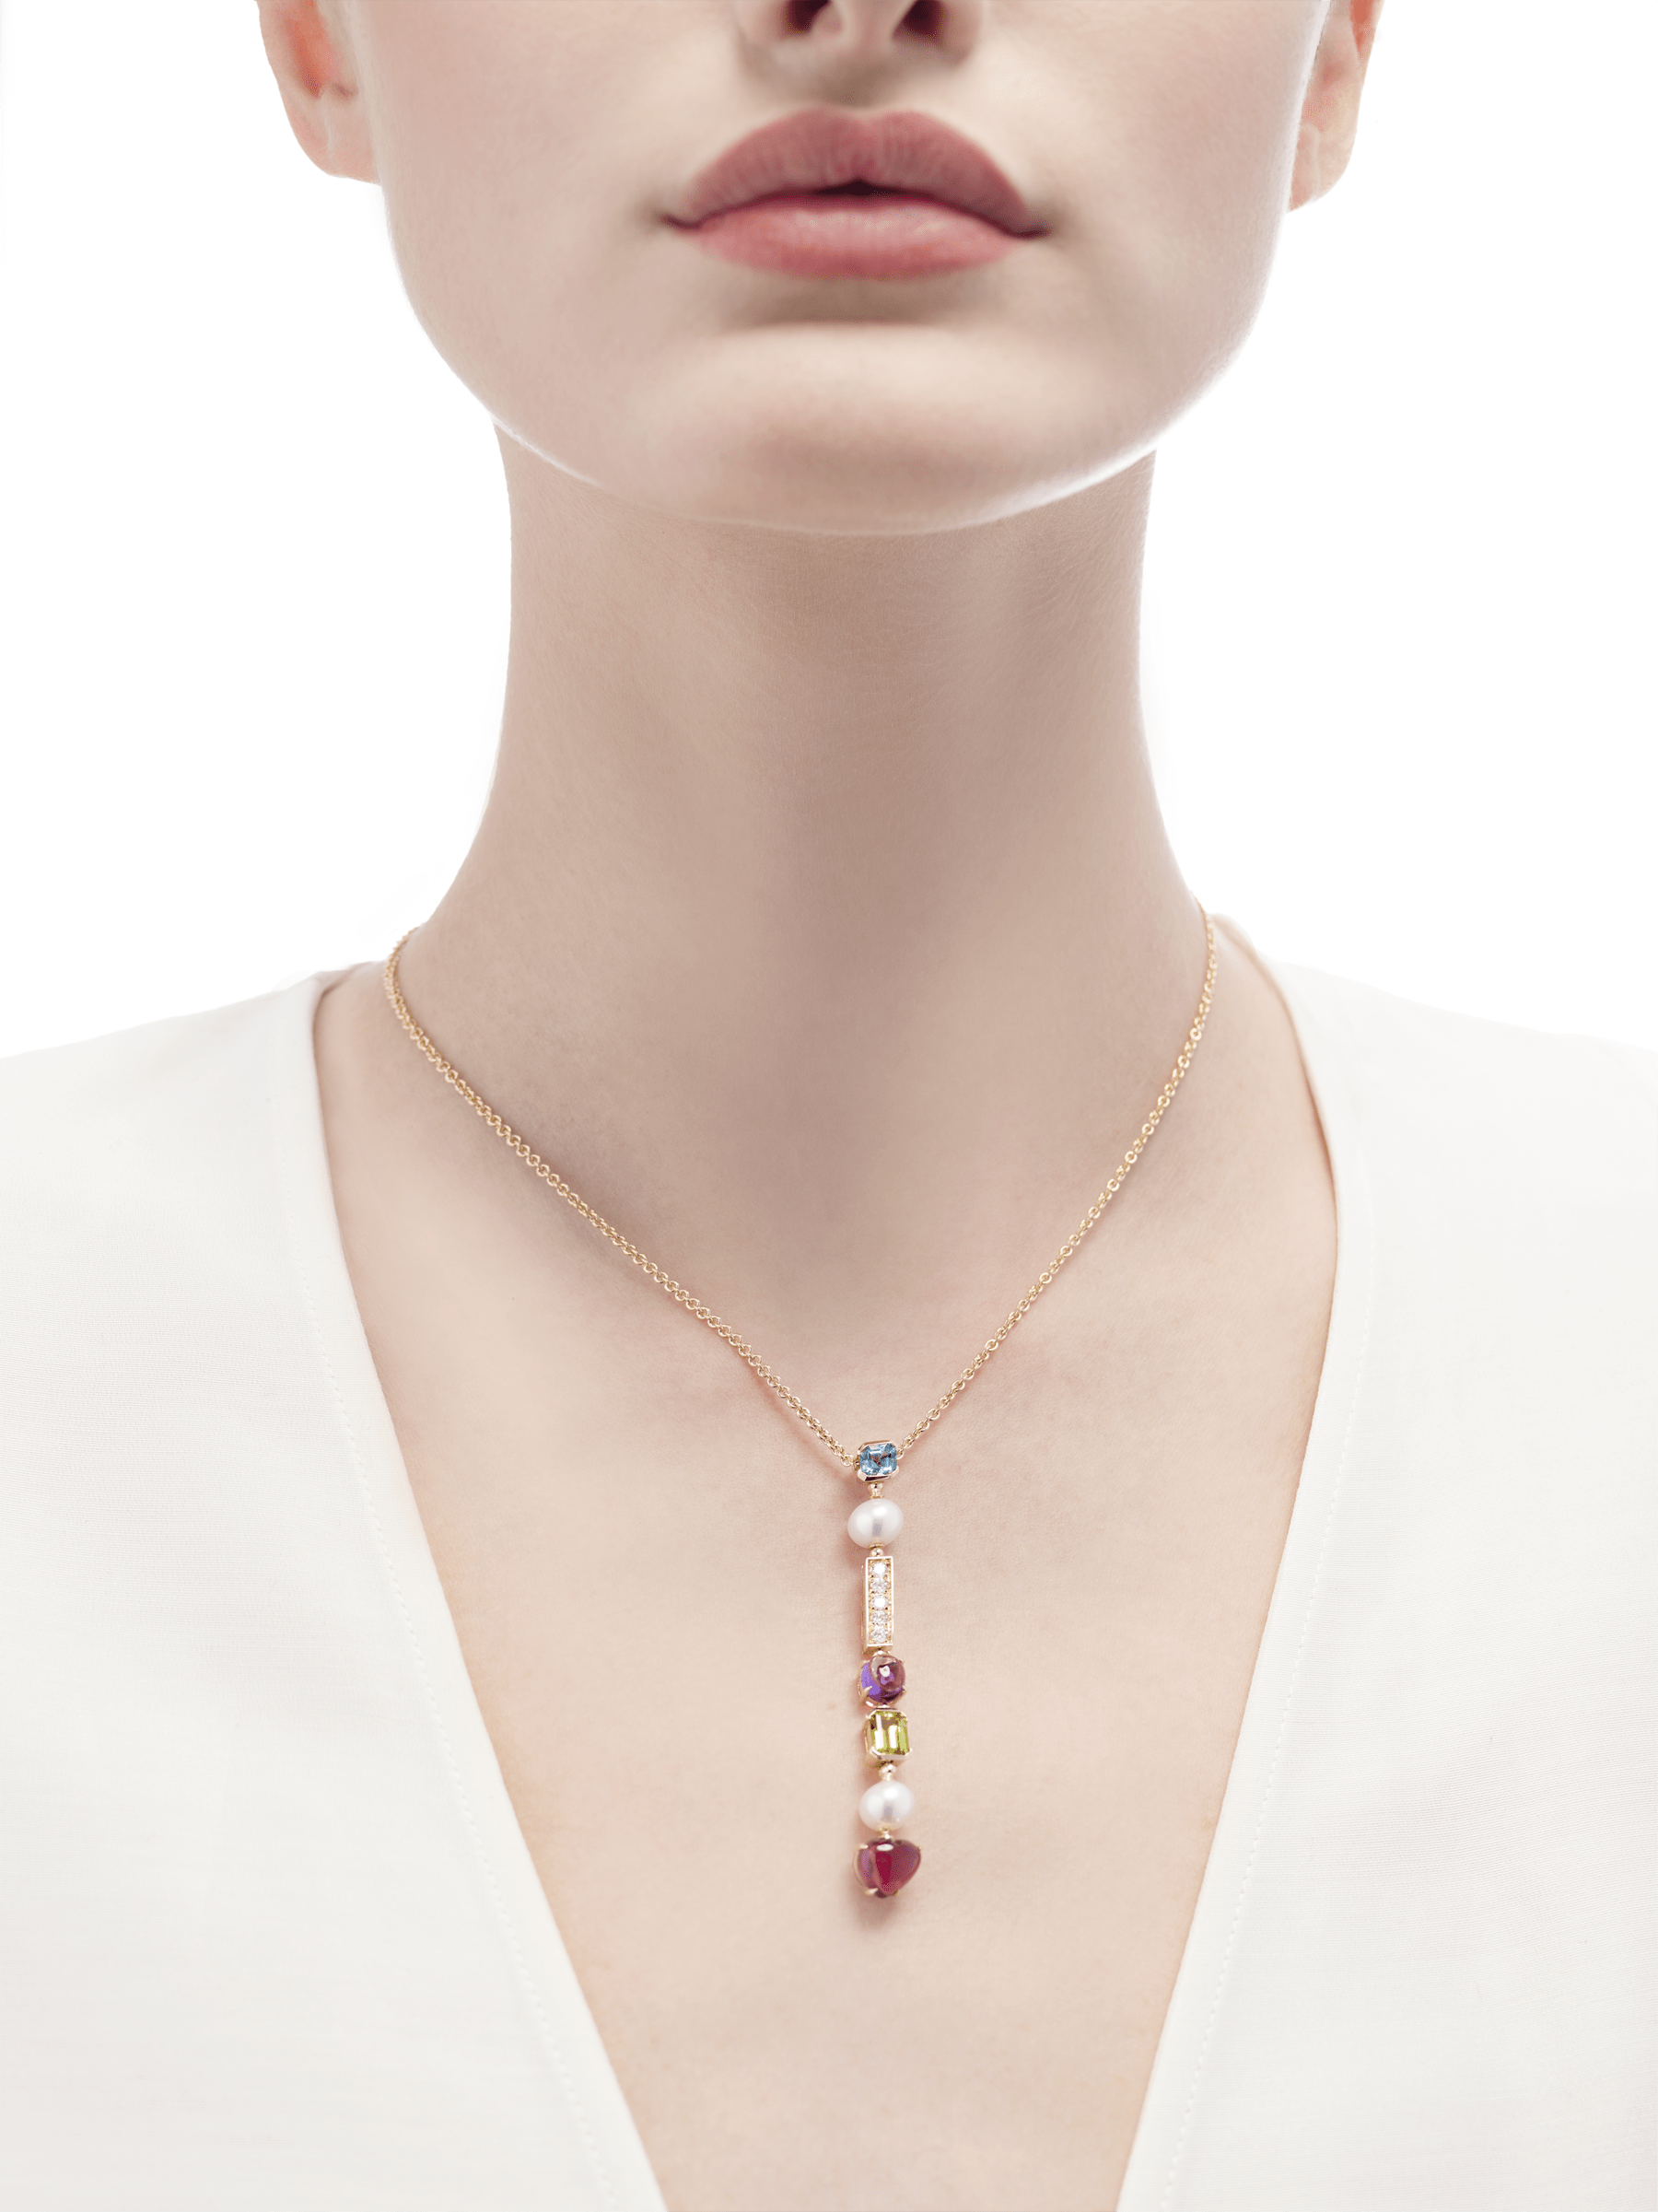 Allegra 18 kt yellow gold pendant necklace set with pink tourmaline, peridot, amethyst, blue topaz, Akoya cultured pearls and pavé diamonds 334667 image 2